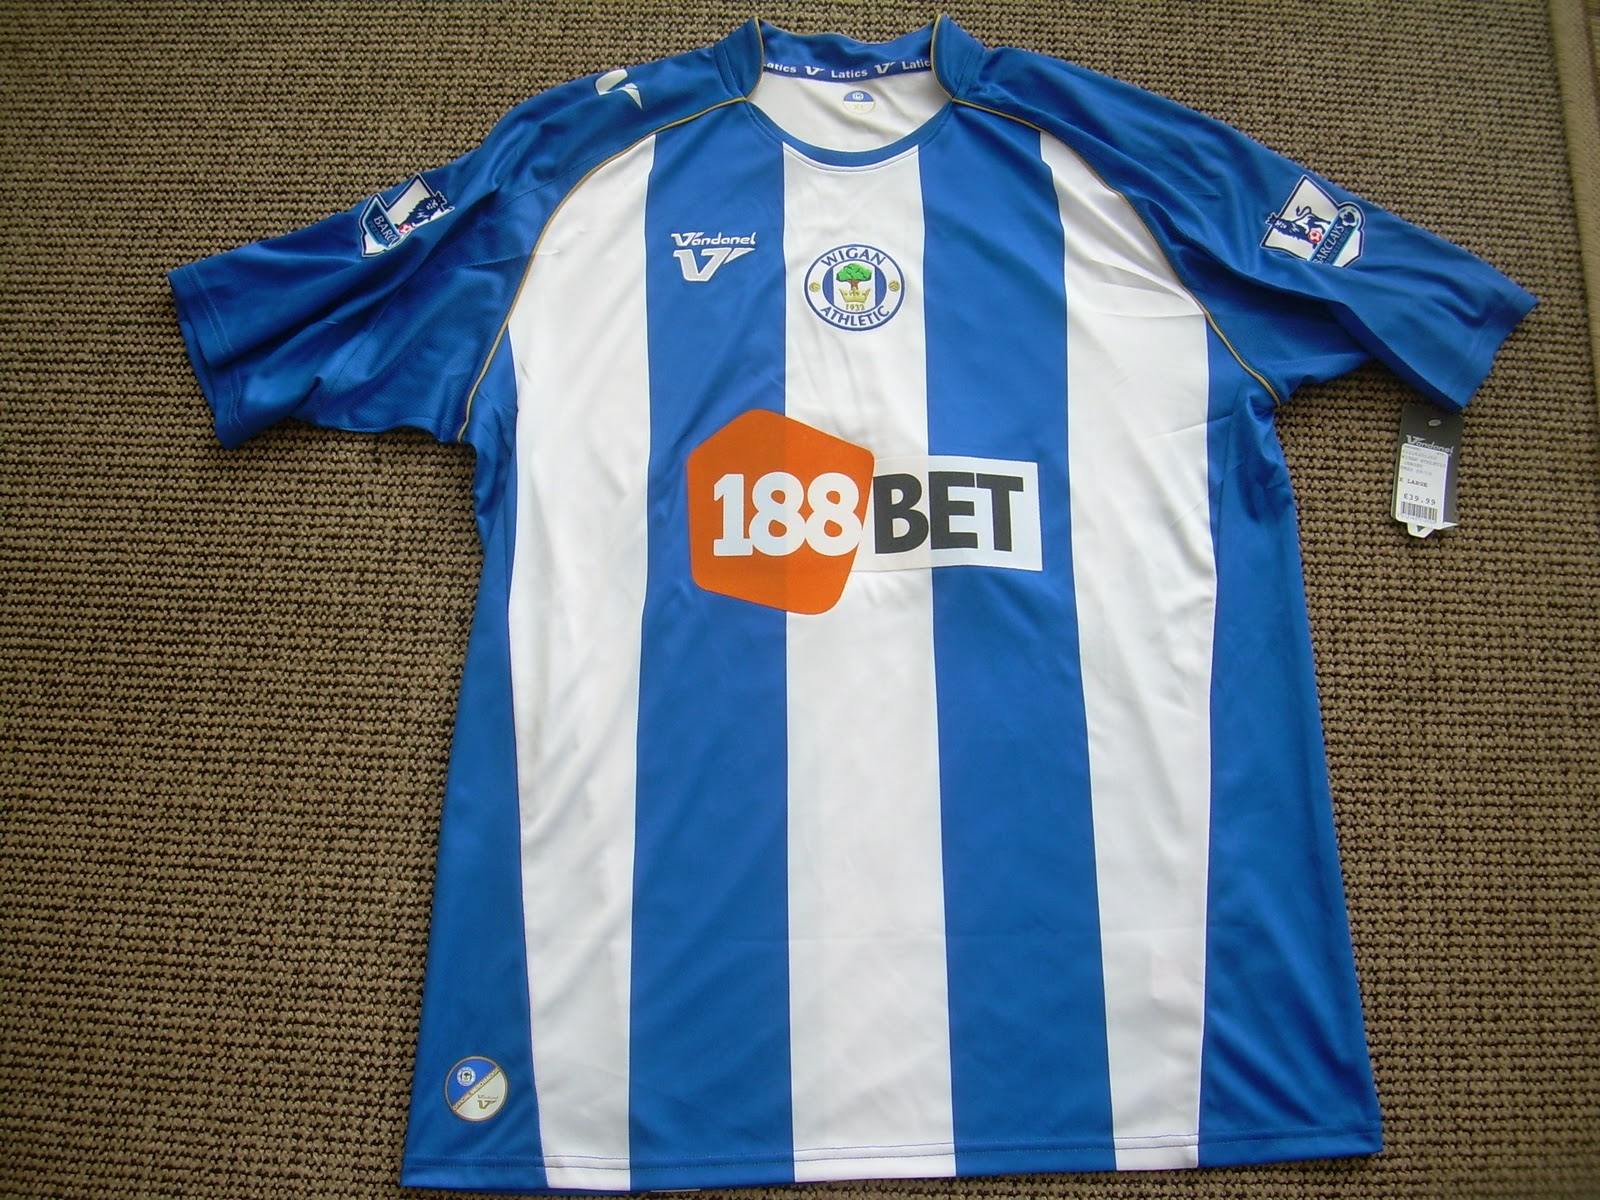 Chùm ảnh: Wigan Athletic (15)